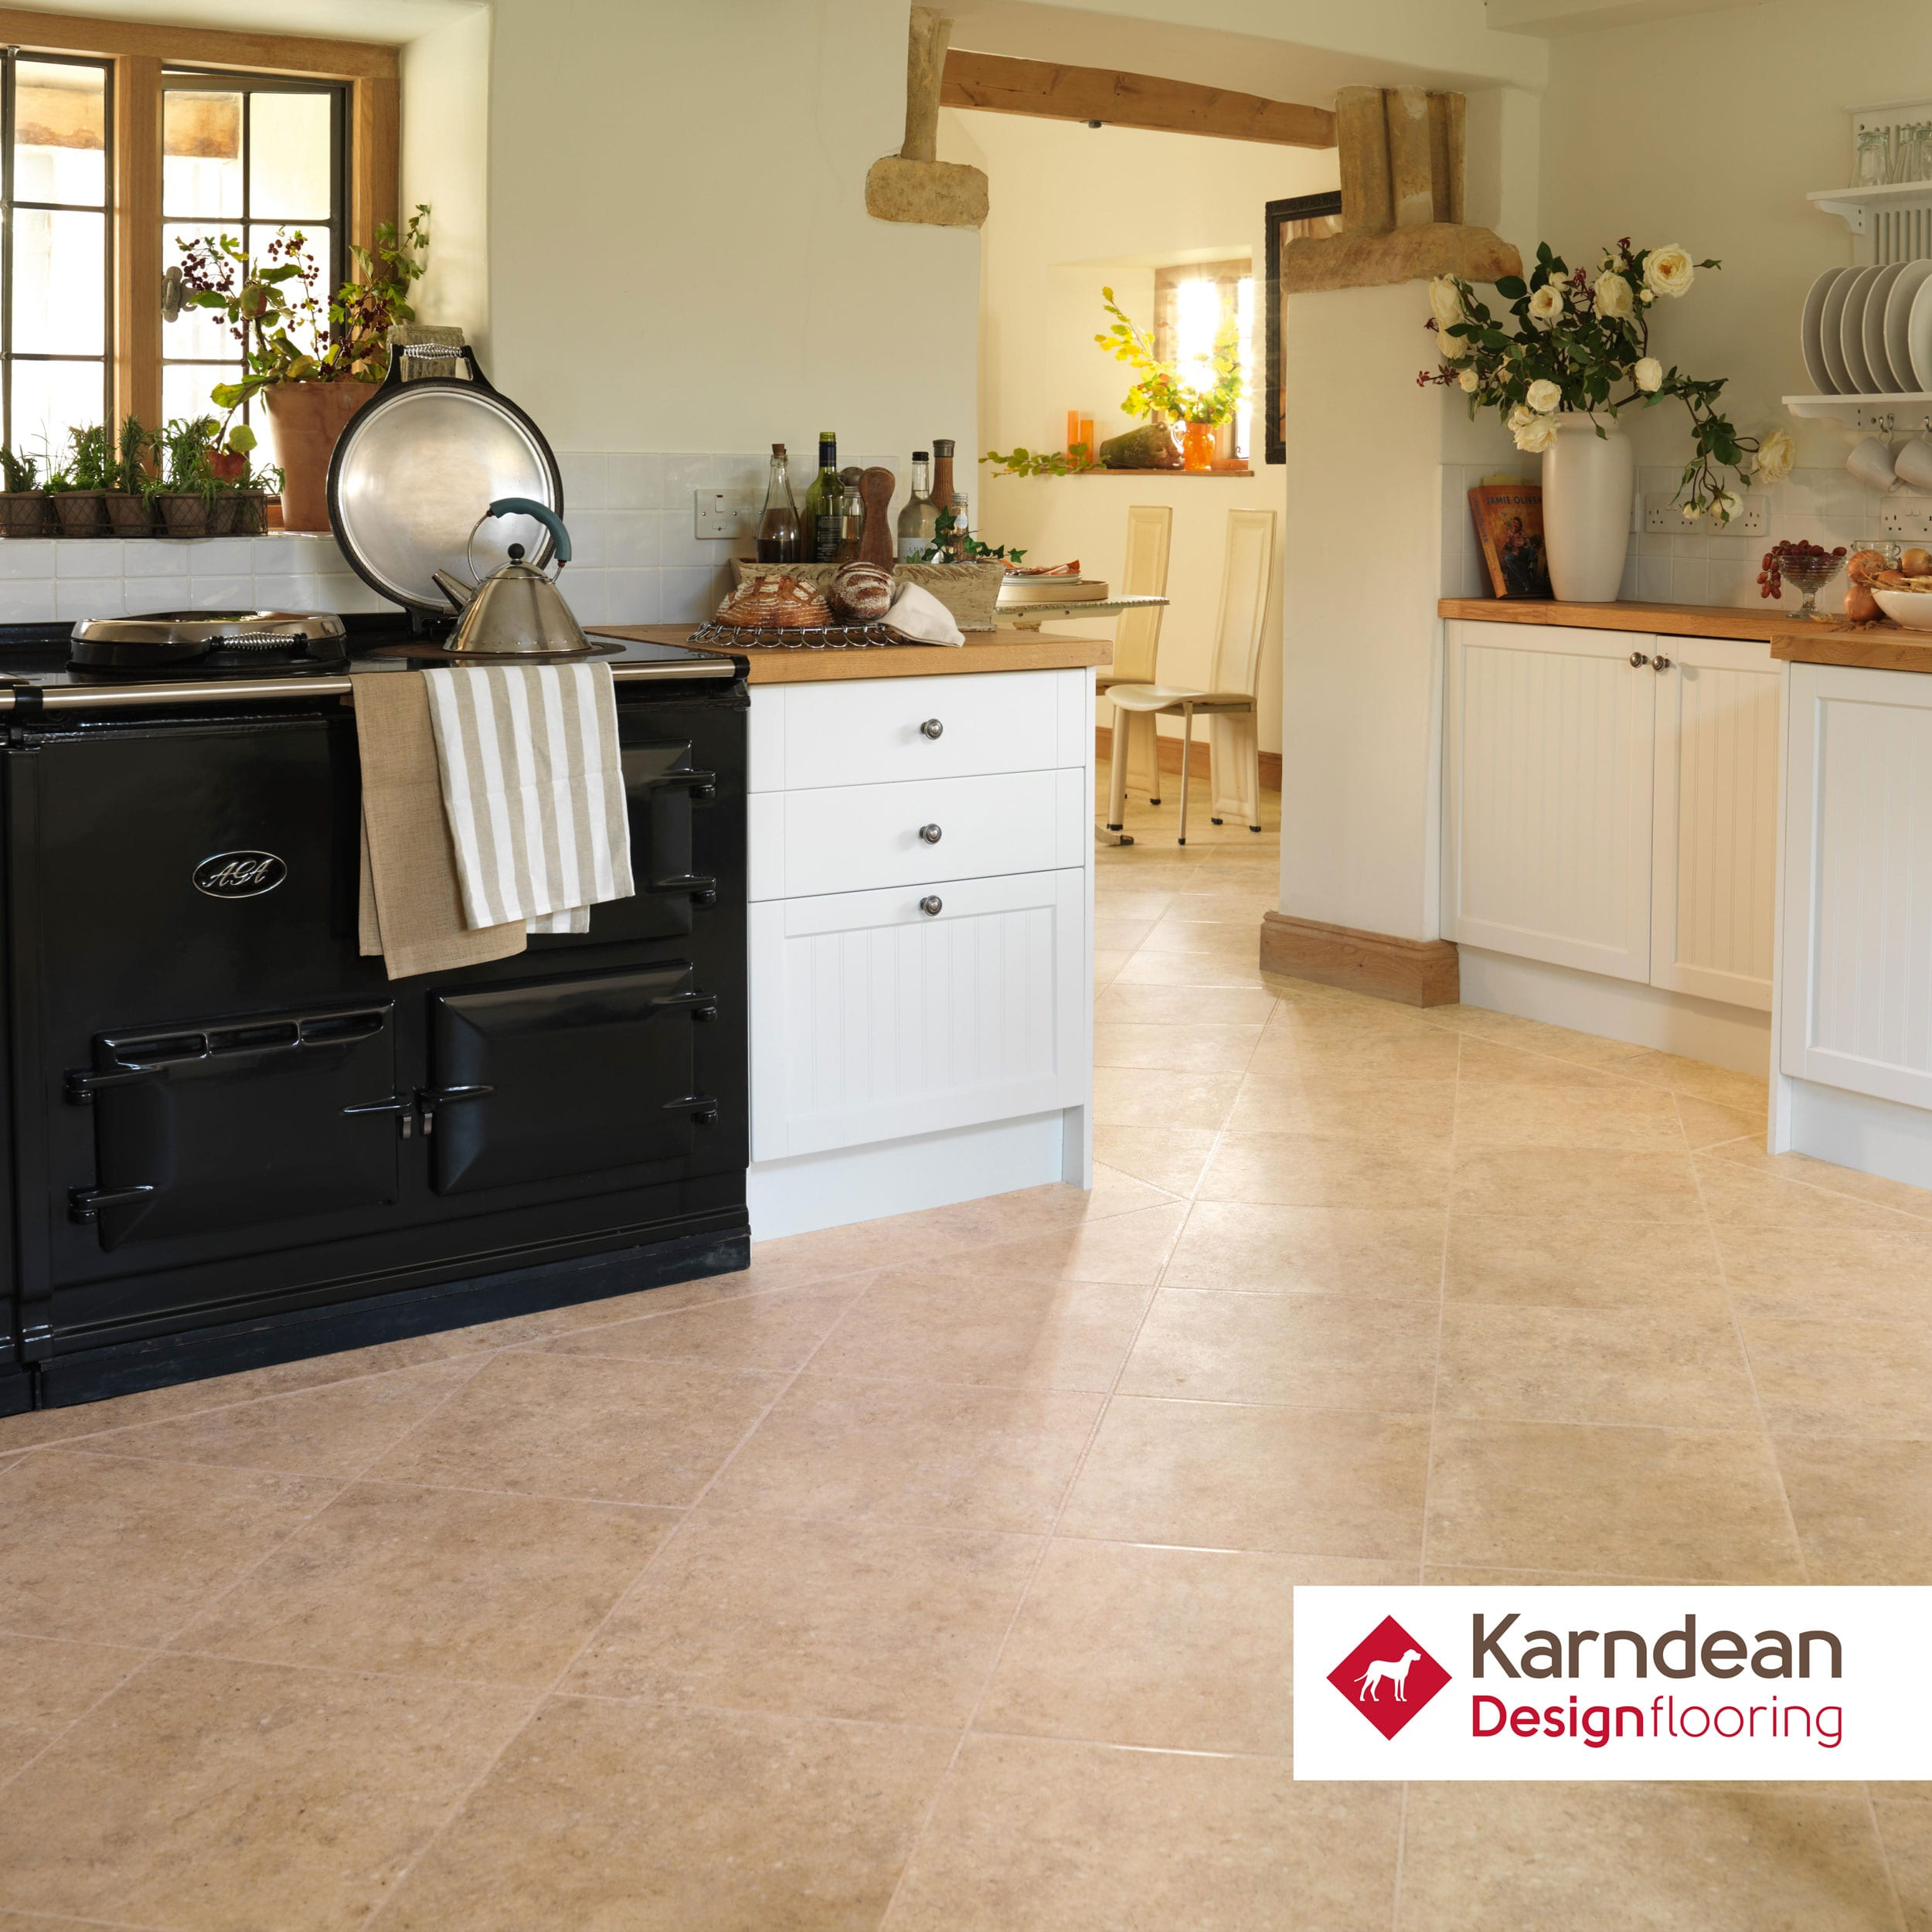 Karndean, the luxurious alternative to laminate, wooden, and ceramic flooring